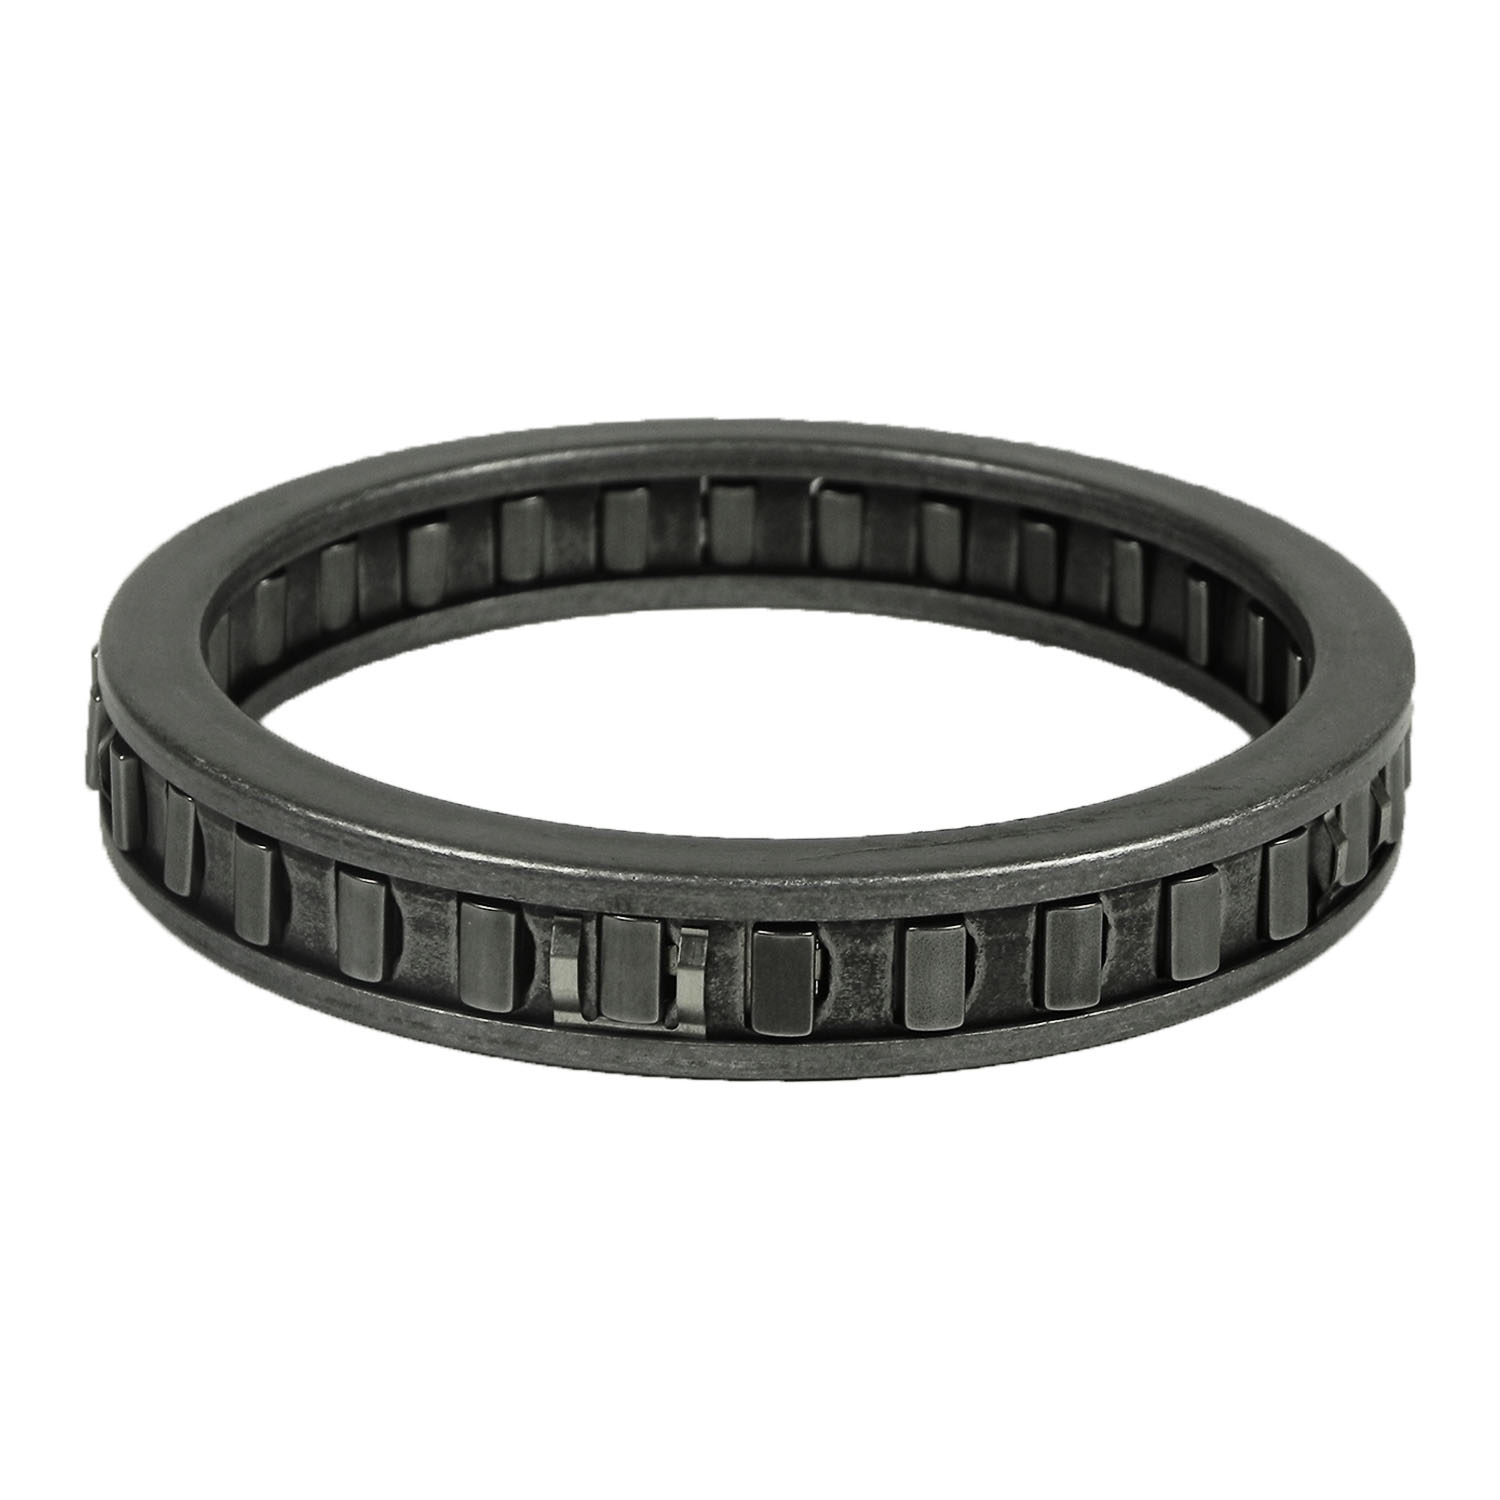 AXOD, AXOD-E, AX4S, AX4N Low Clutch Sprag